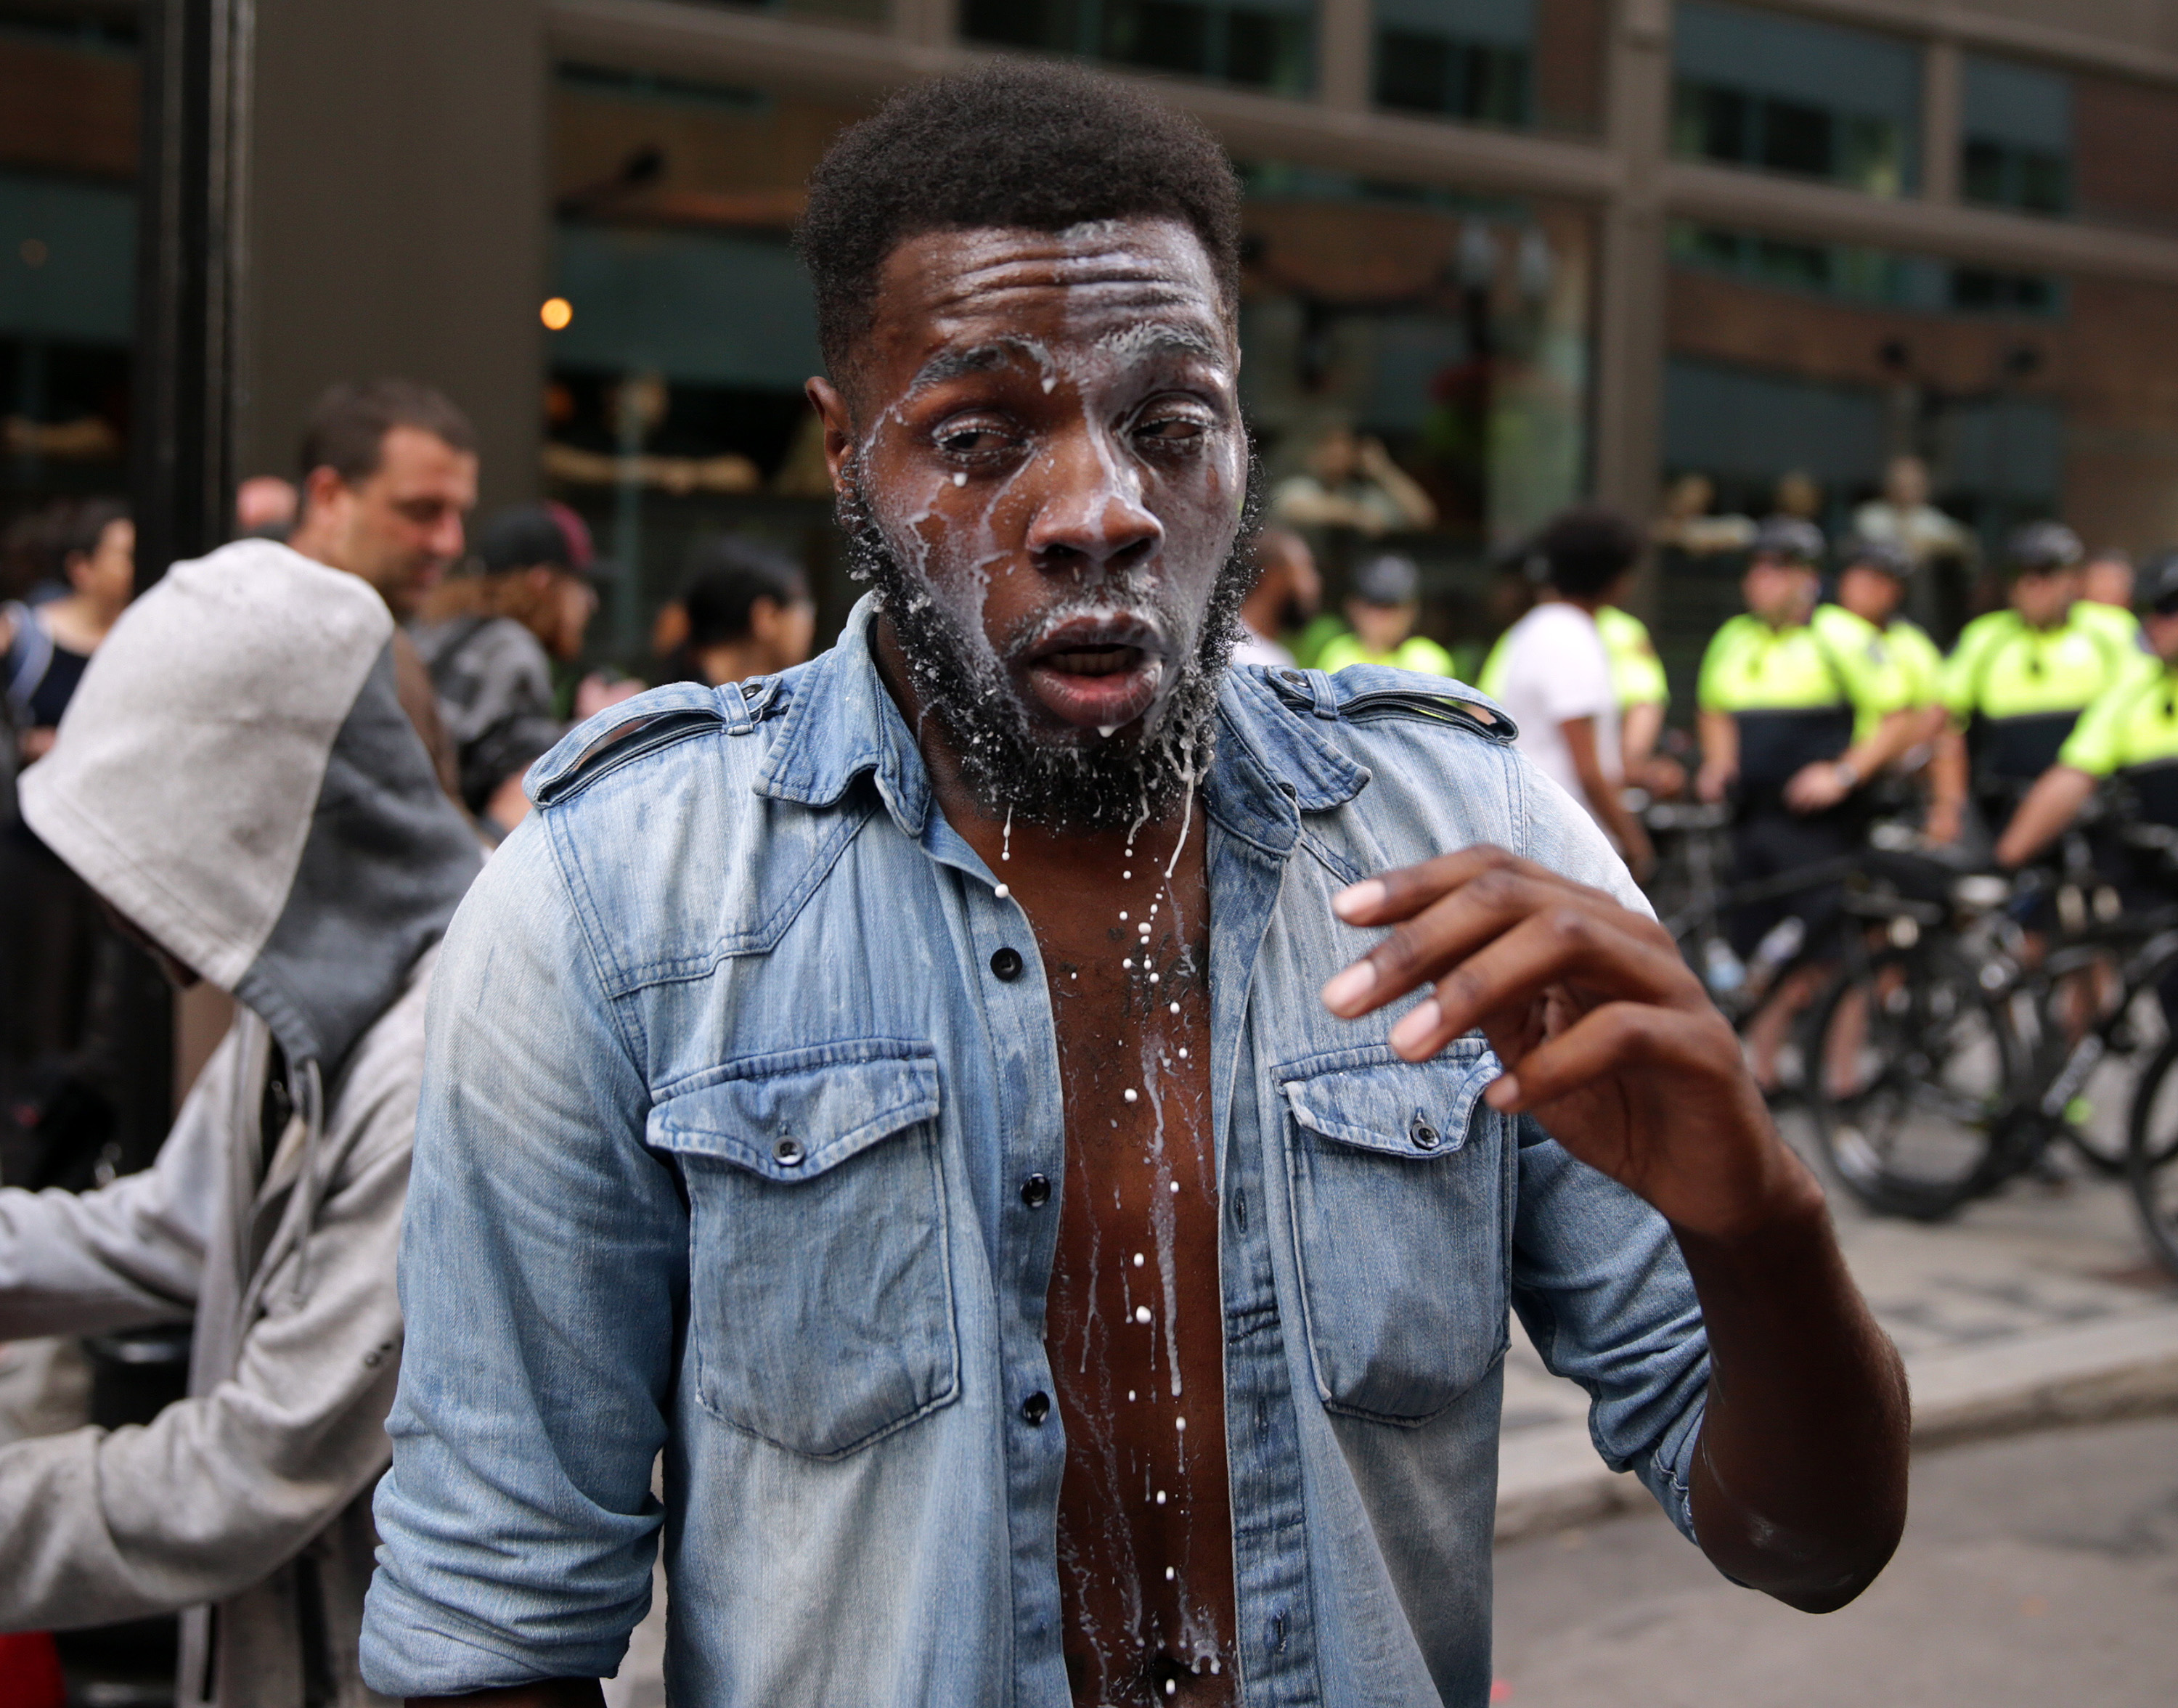 """BOSTON - AUGUST 19: A protester drips of milk after being maced on Washington Street in the tense situations that broke out following the """"Boston Free Speech"""" rally and counter protest in Boston on Aug. 19, 2017. (Photo by Jonathan Wiggs/The Boston Globe via Getty Images)"""